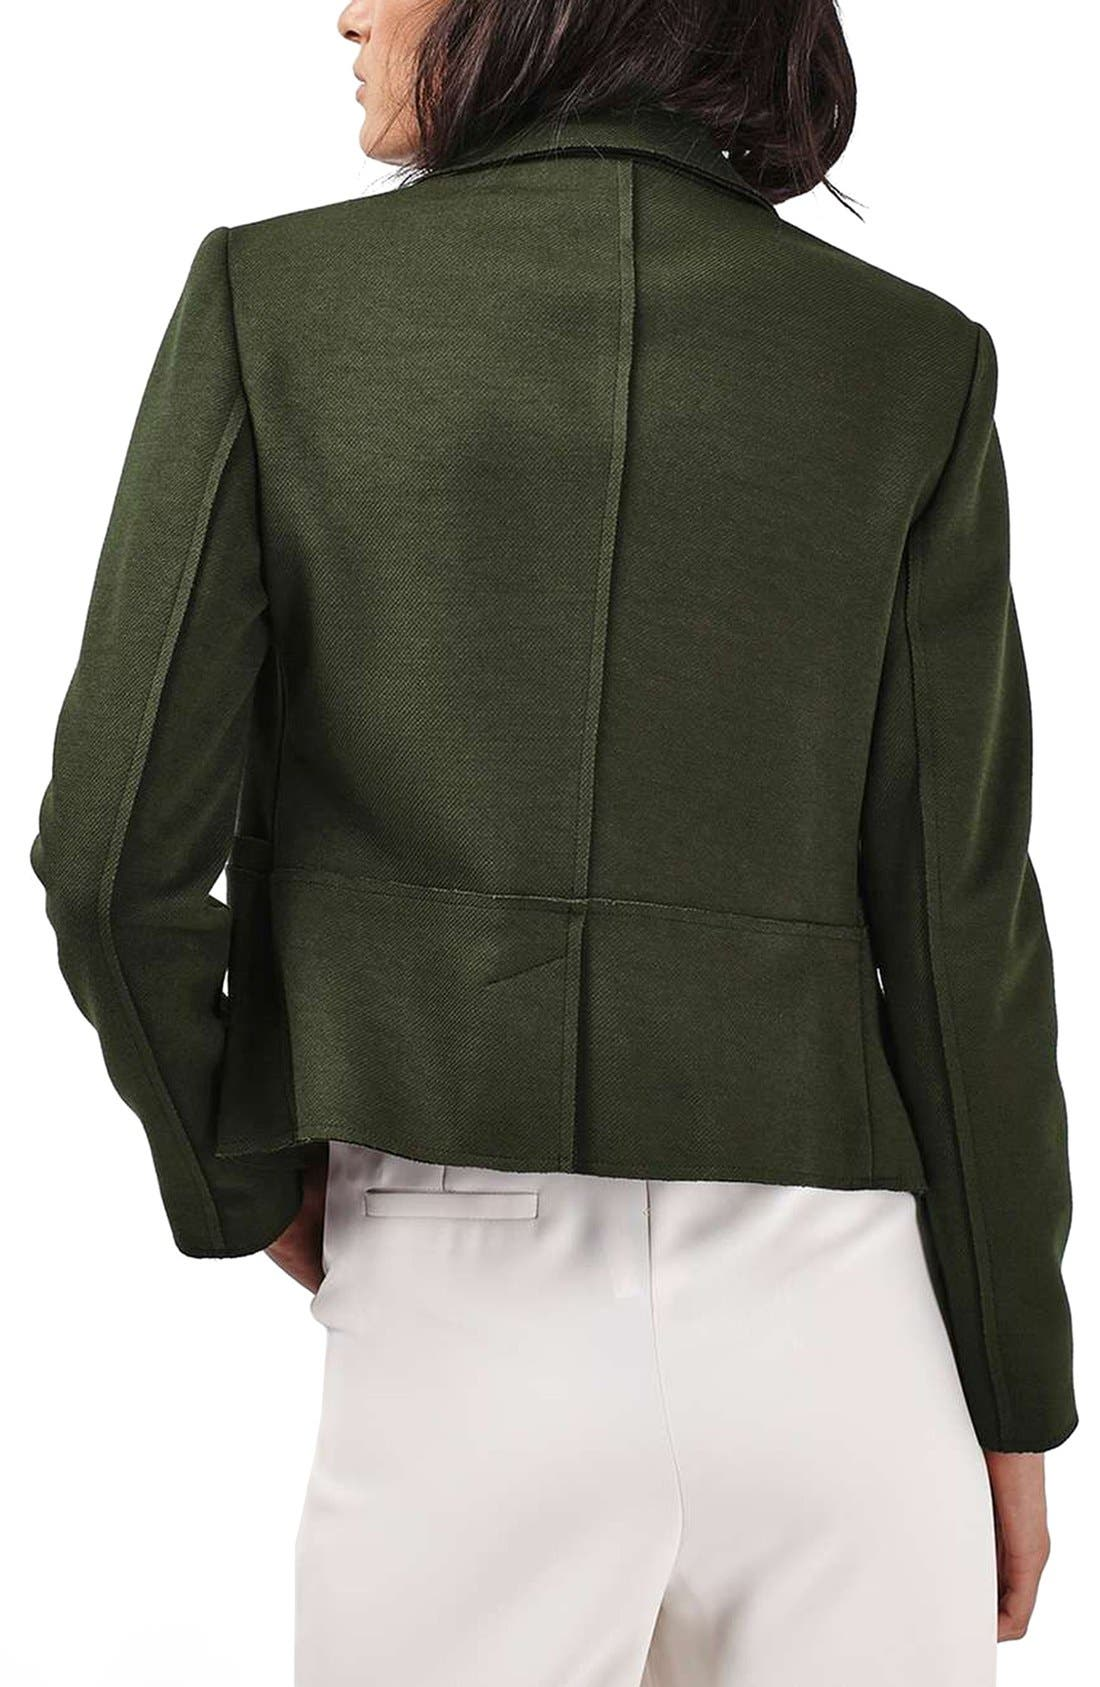 Gold Button Double Breasted Blazer,                             Alternate thumbnail 3, color,                             Green